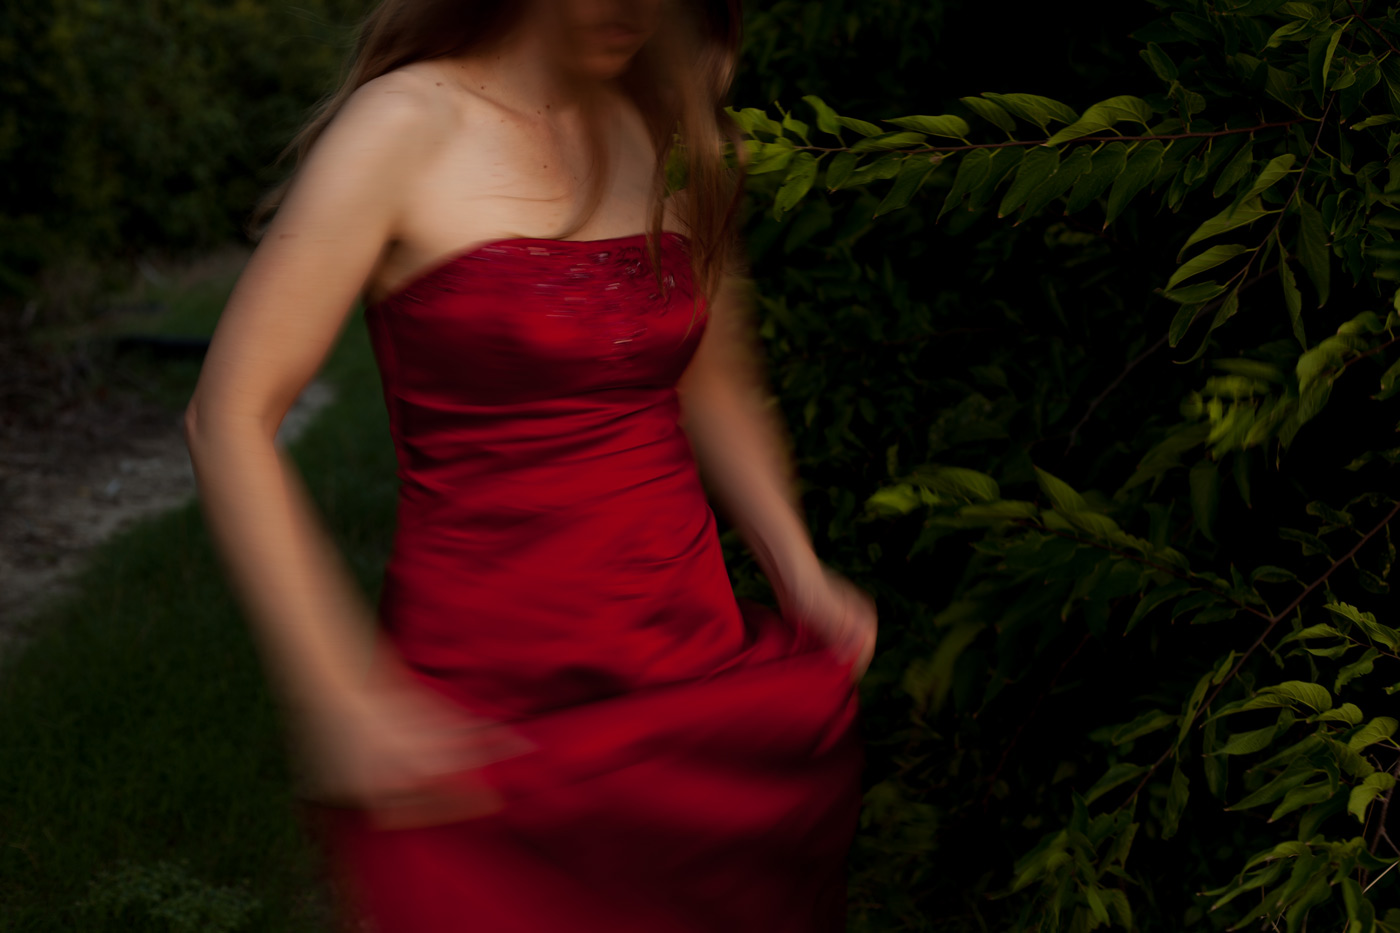 2018.8.23-Red-dress-field-blur-1-COMP